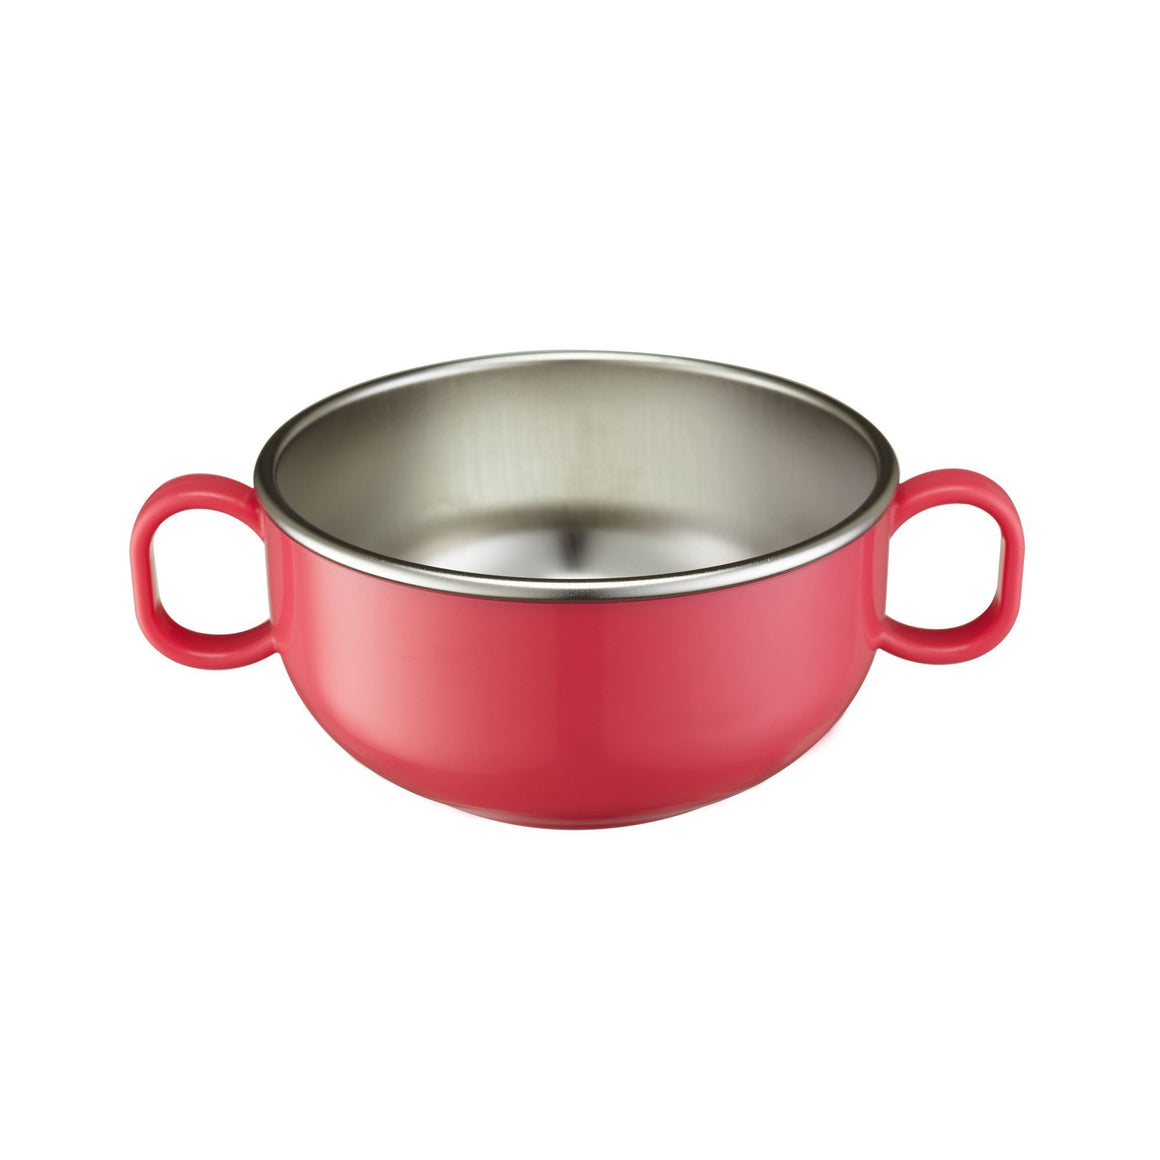 Innobaby Stainless Steel Small Bowl 不銹綱小碗 (3個顏色)-Innobaby-shopababy